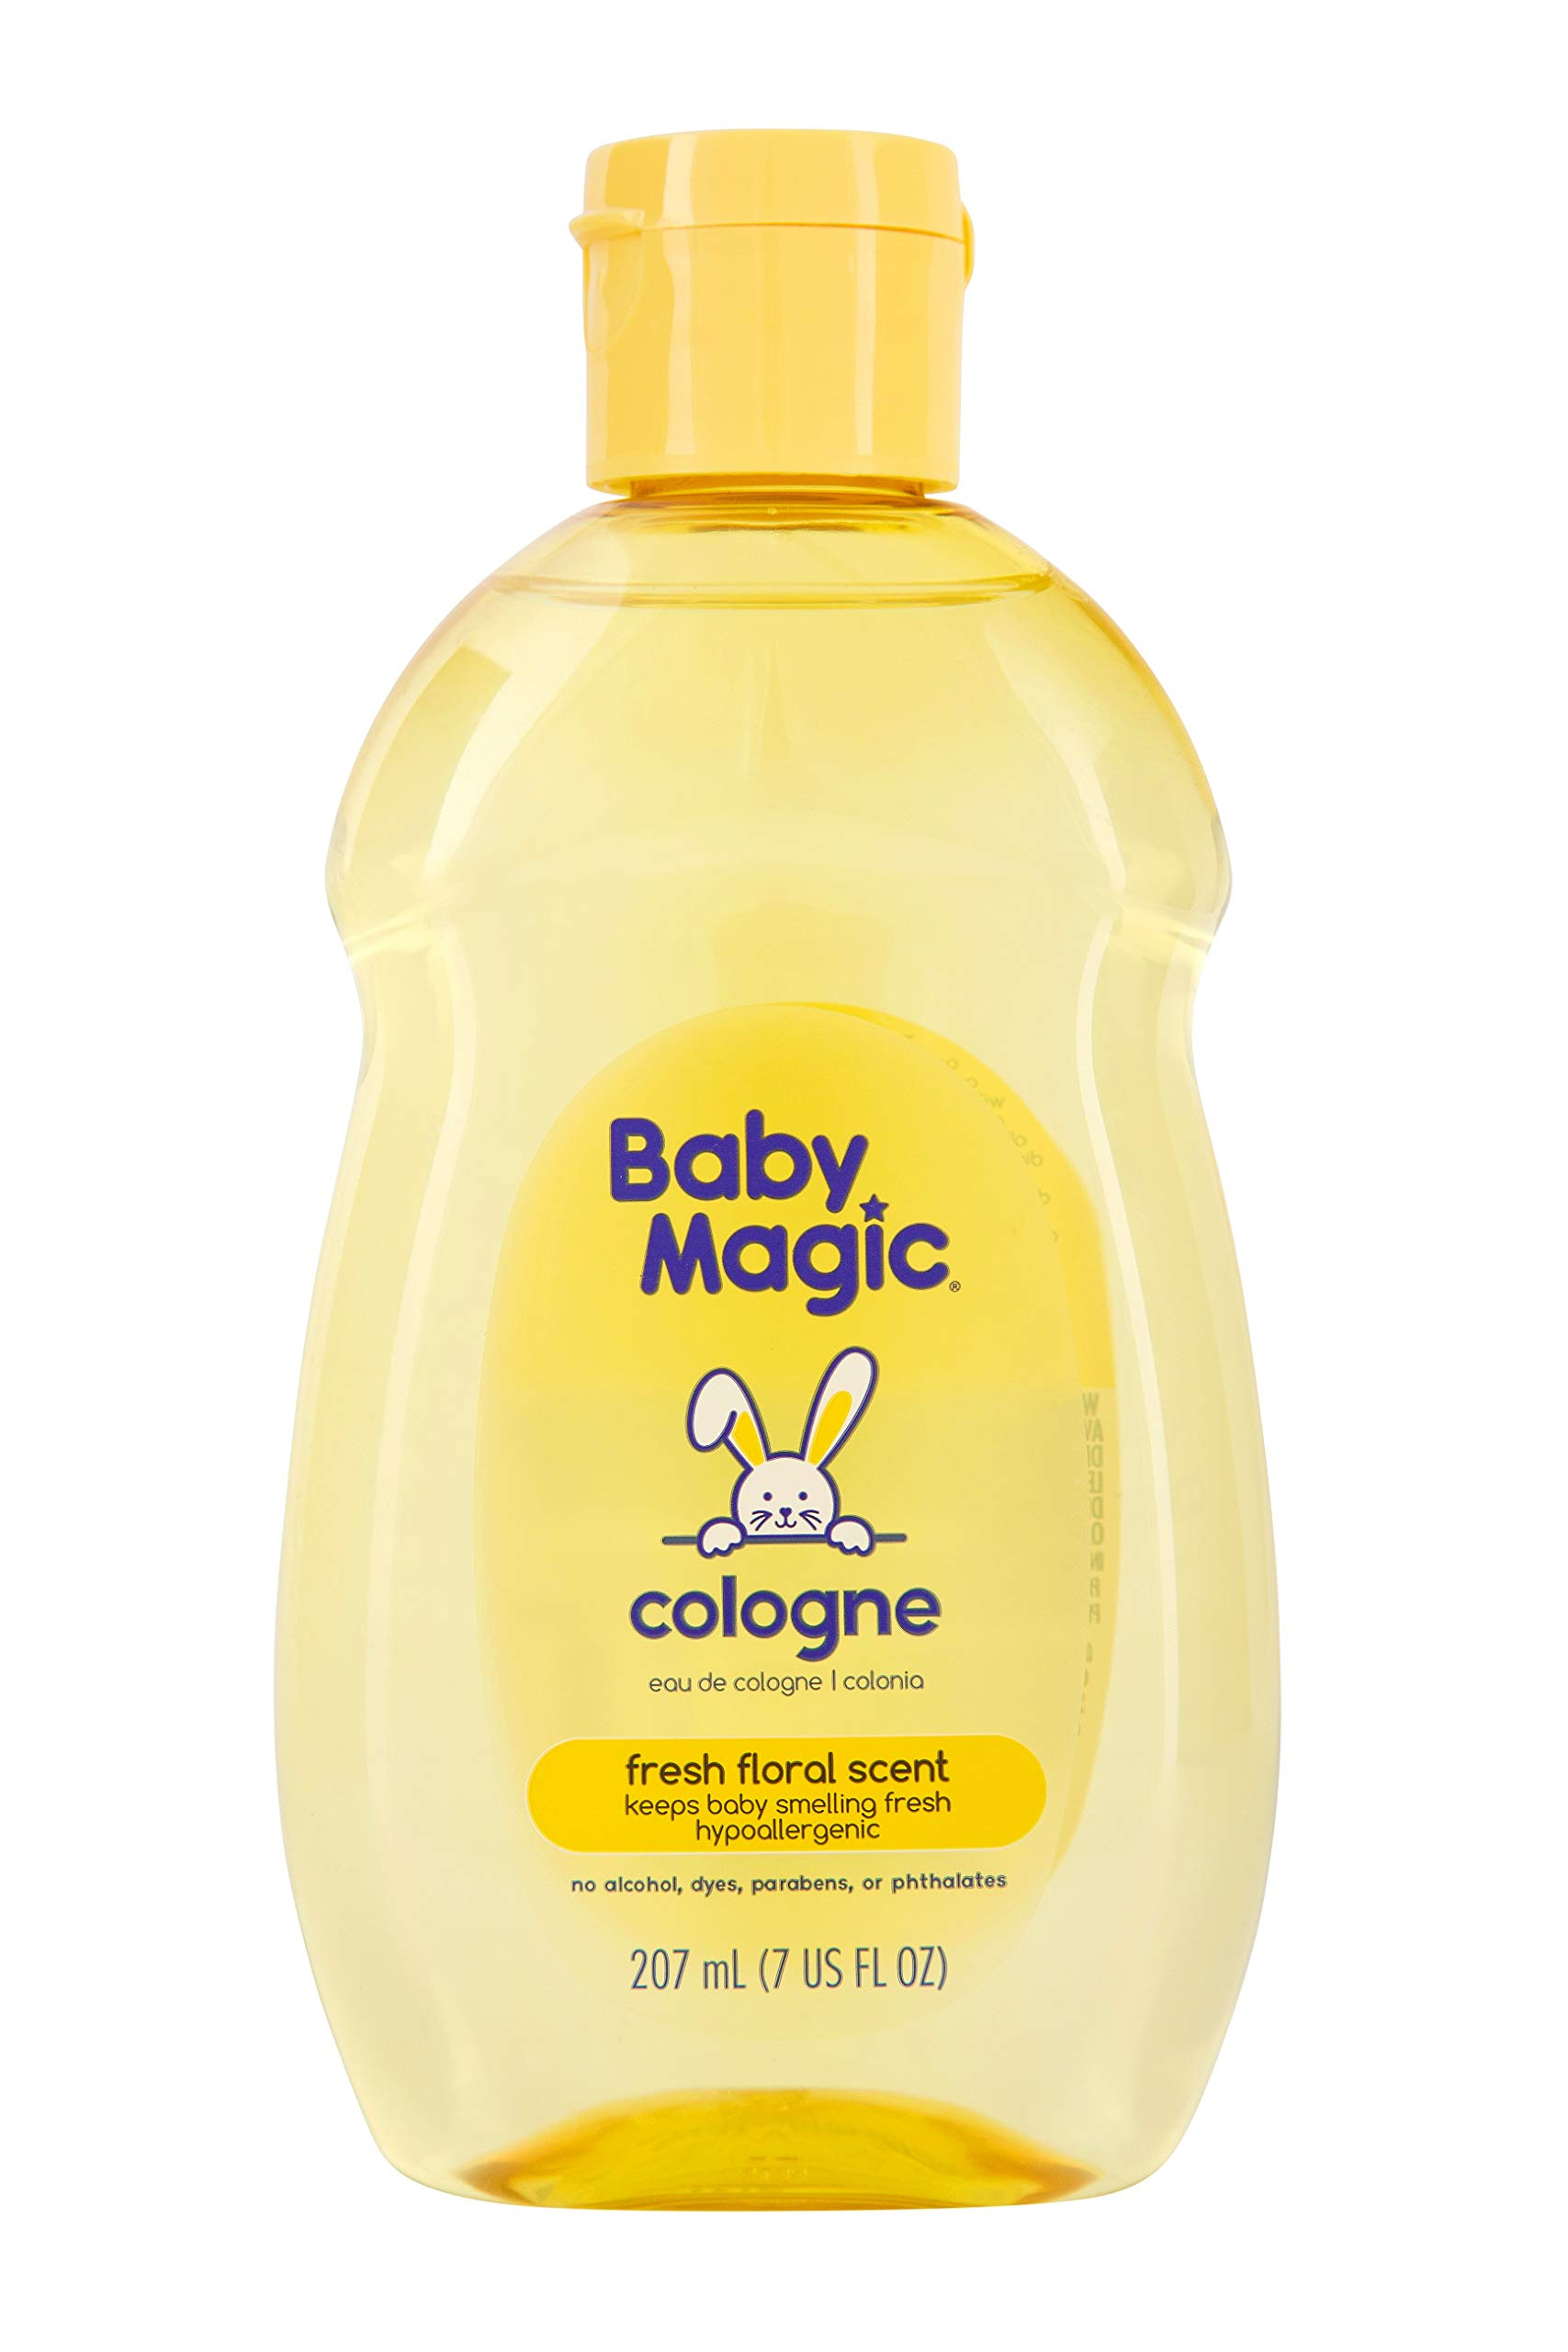 Baby Magic Cologne | 7oz | Hypoallergenic & Alcohol-Free | Free of Parabens, Phthalates, Sulfates and Dyes